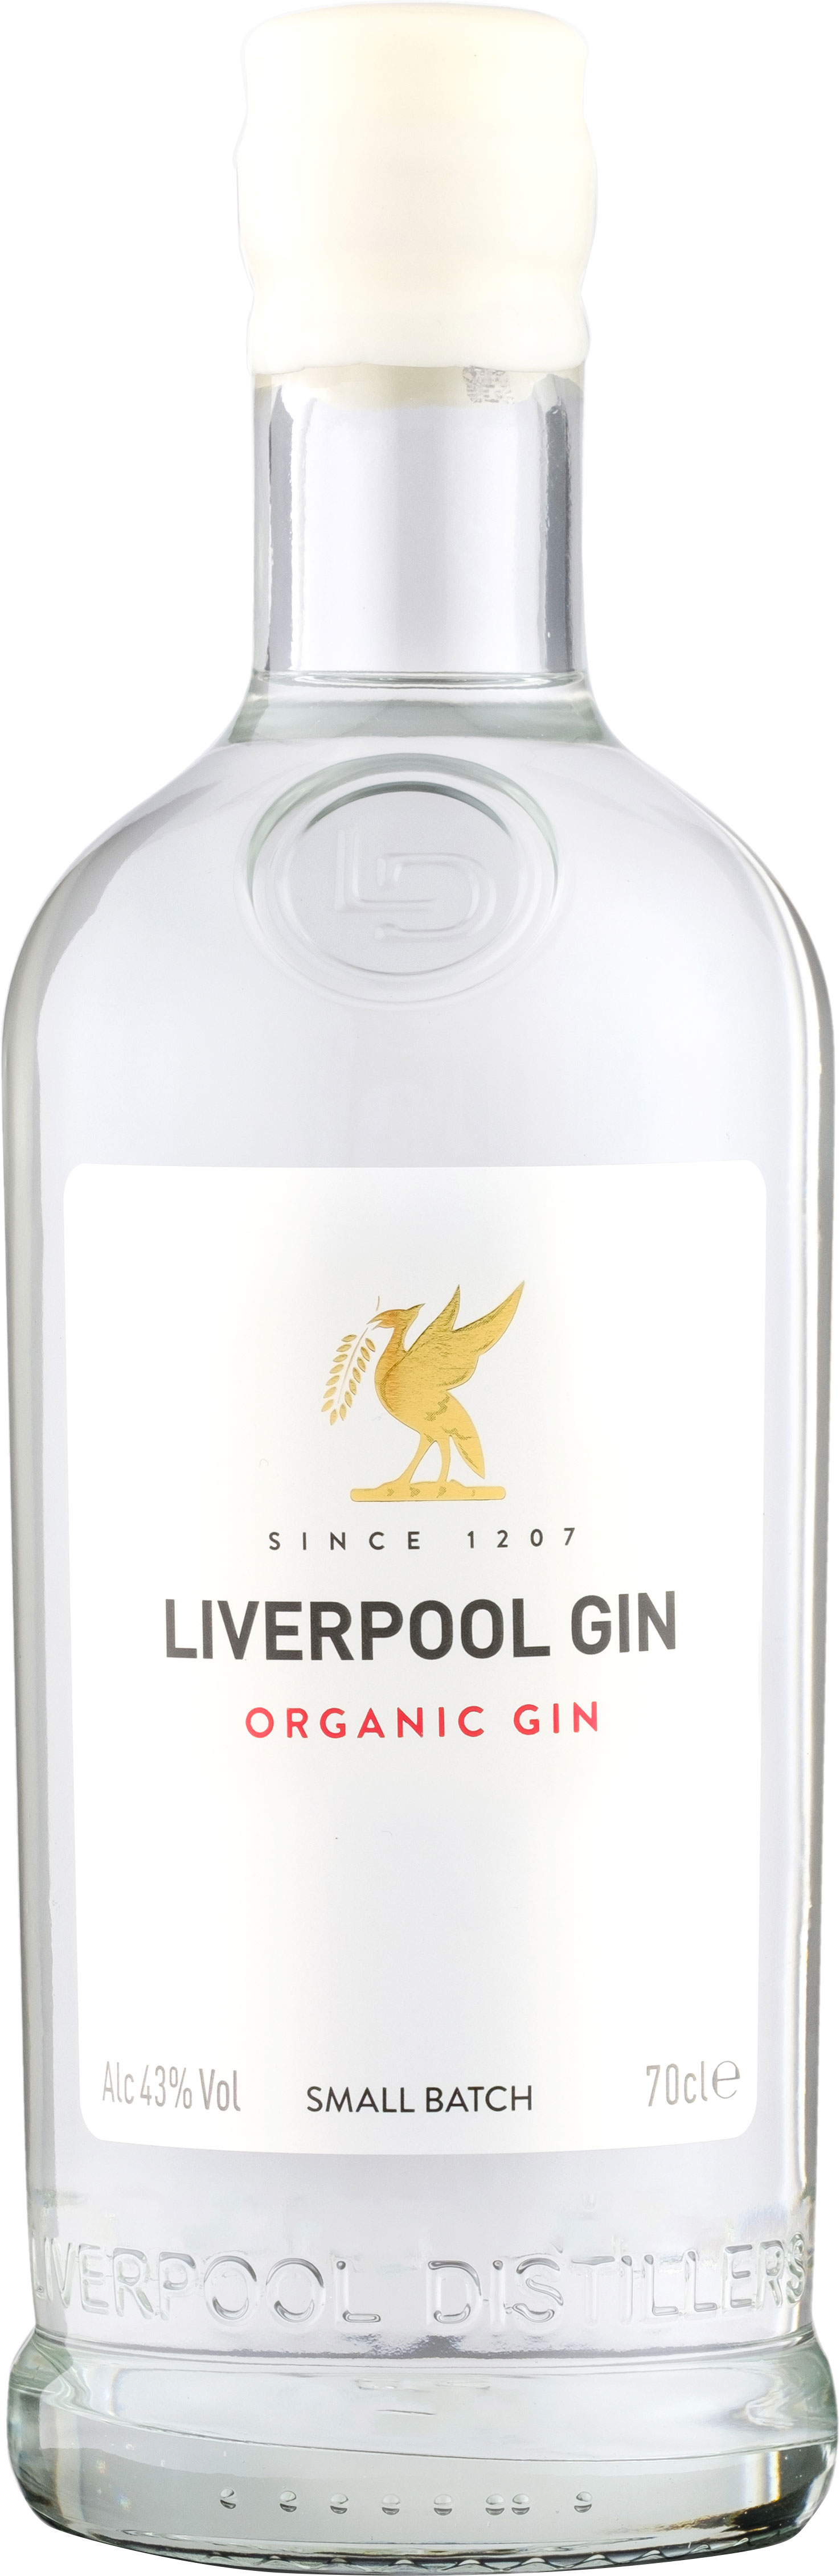 Liverpool Gin Distillery - Organic Gin 70cl Bottle